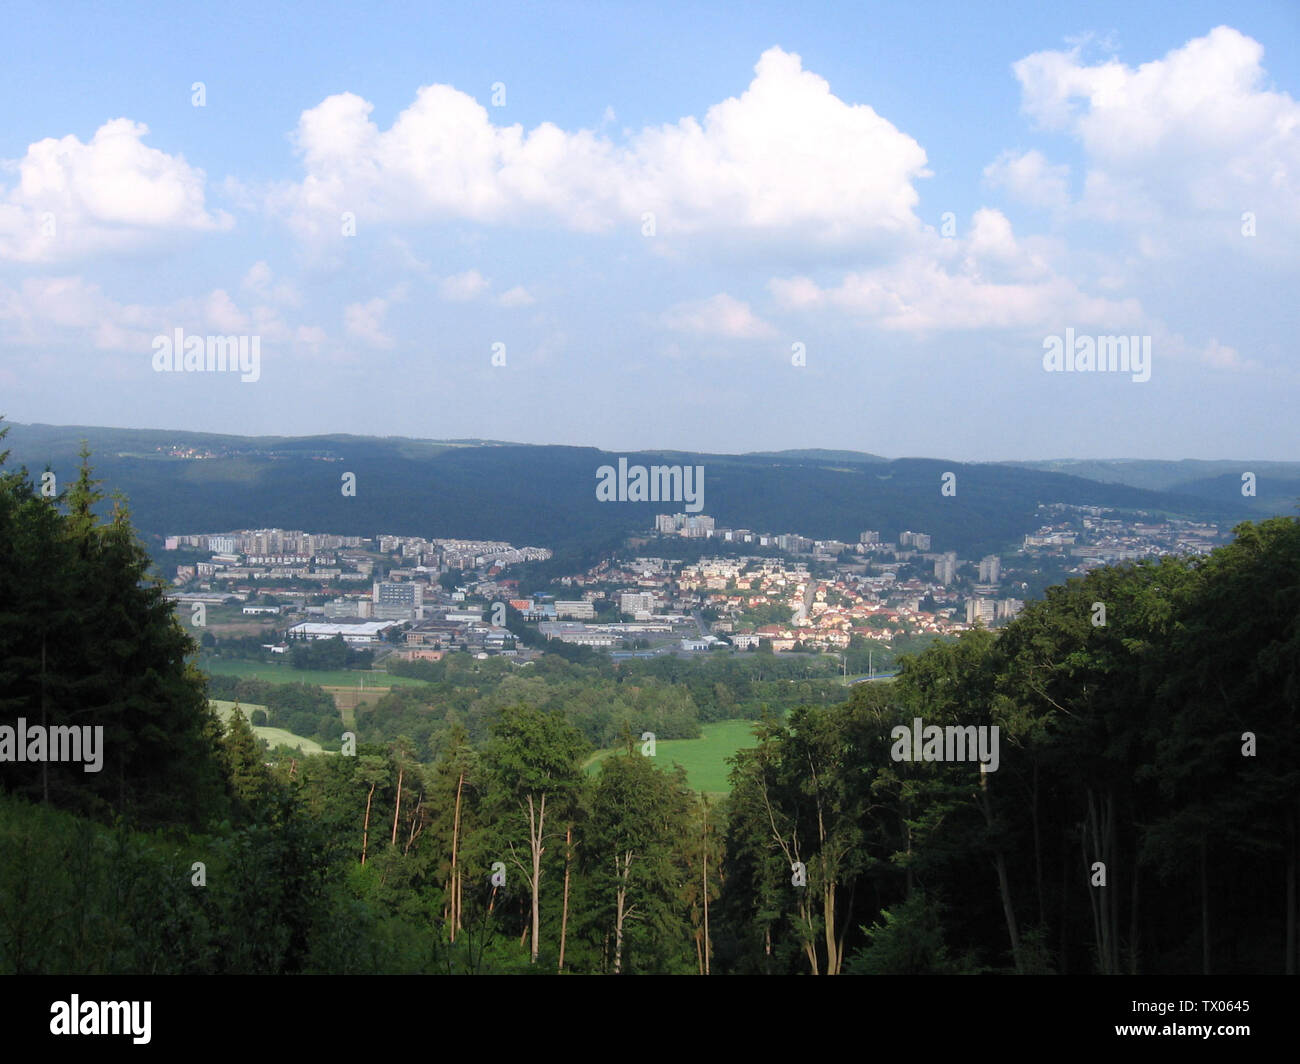 Blansko Stock Photos & Blansko Stock Images - Alamy